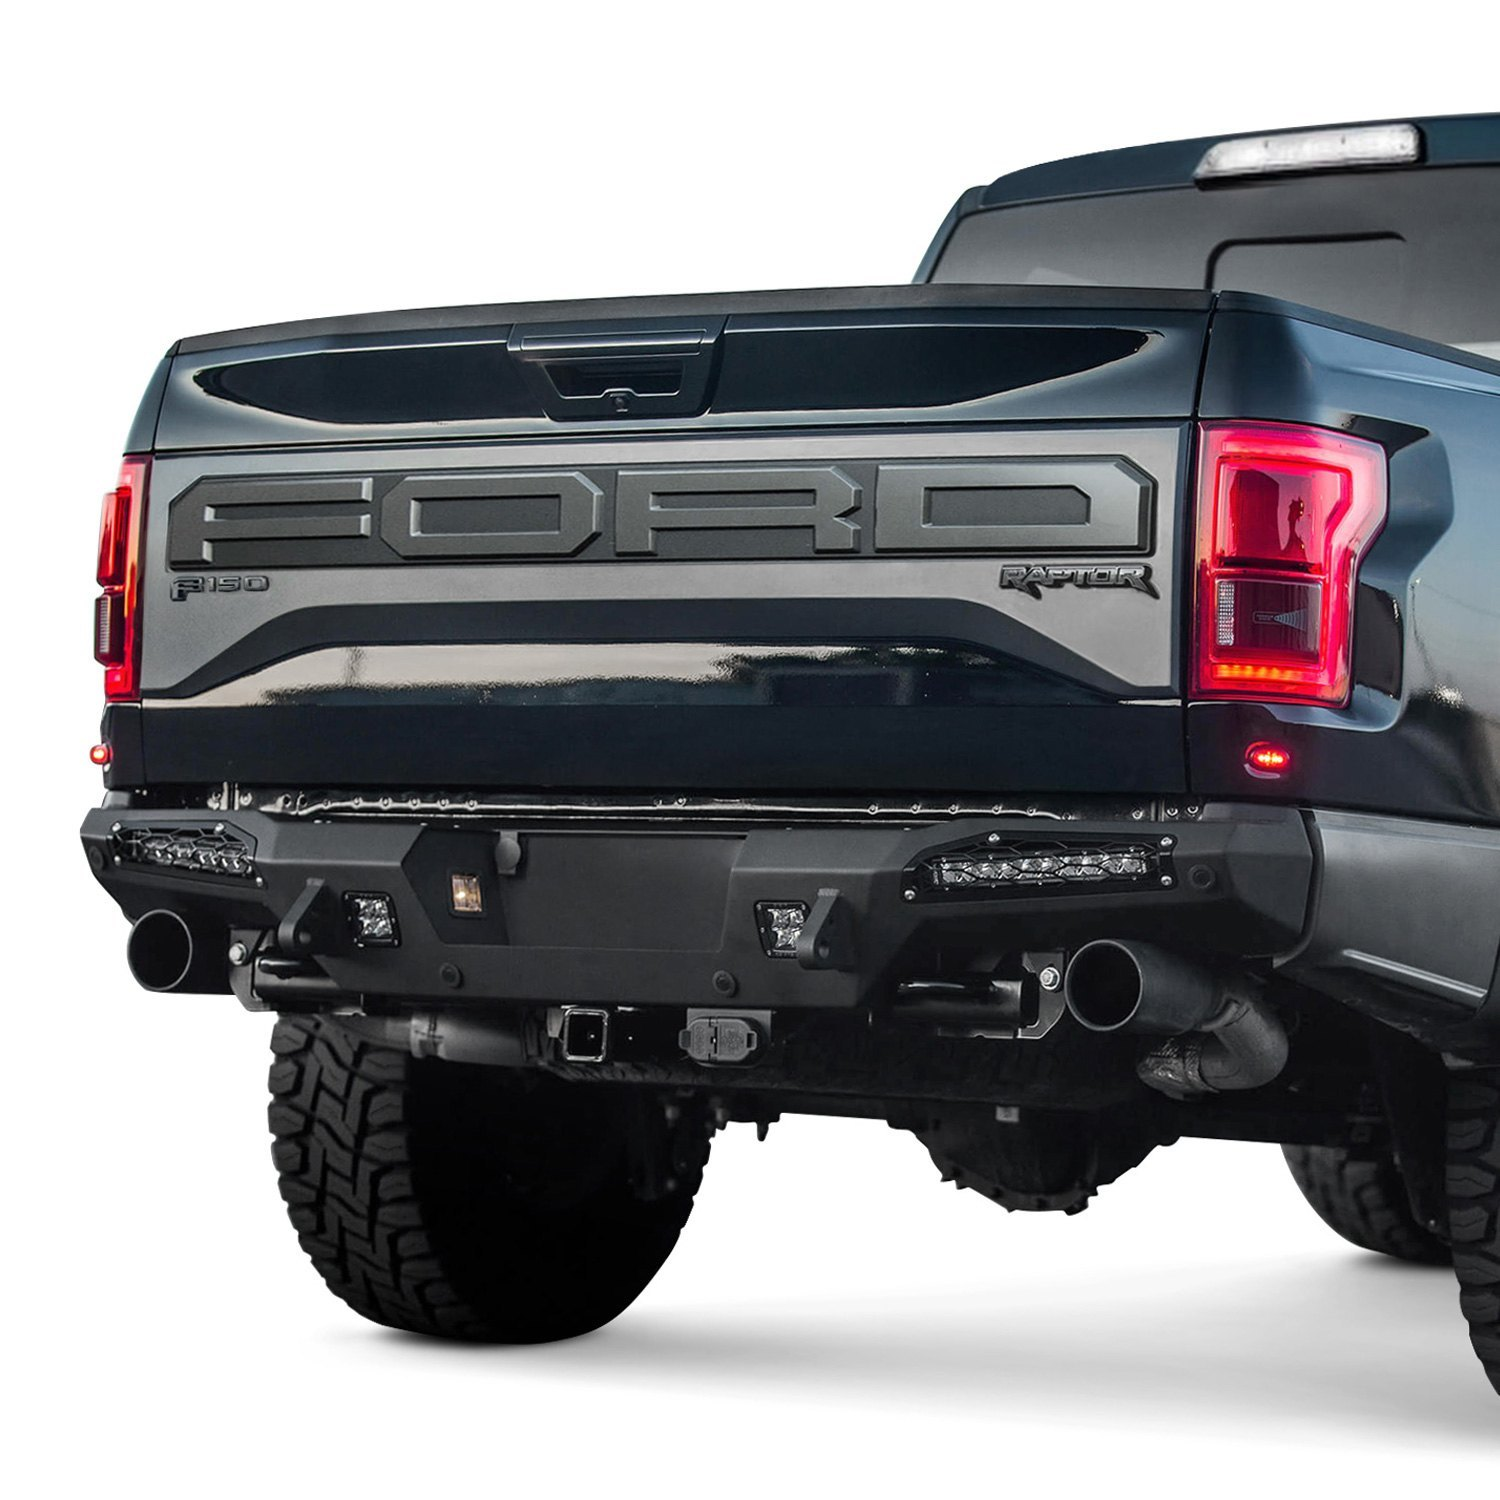 Ford F150 Towing Capacity >> Ford F 150 Prices | Autos Post